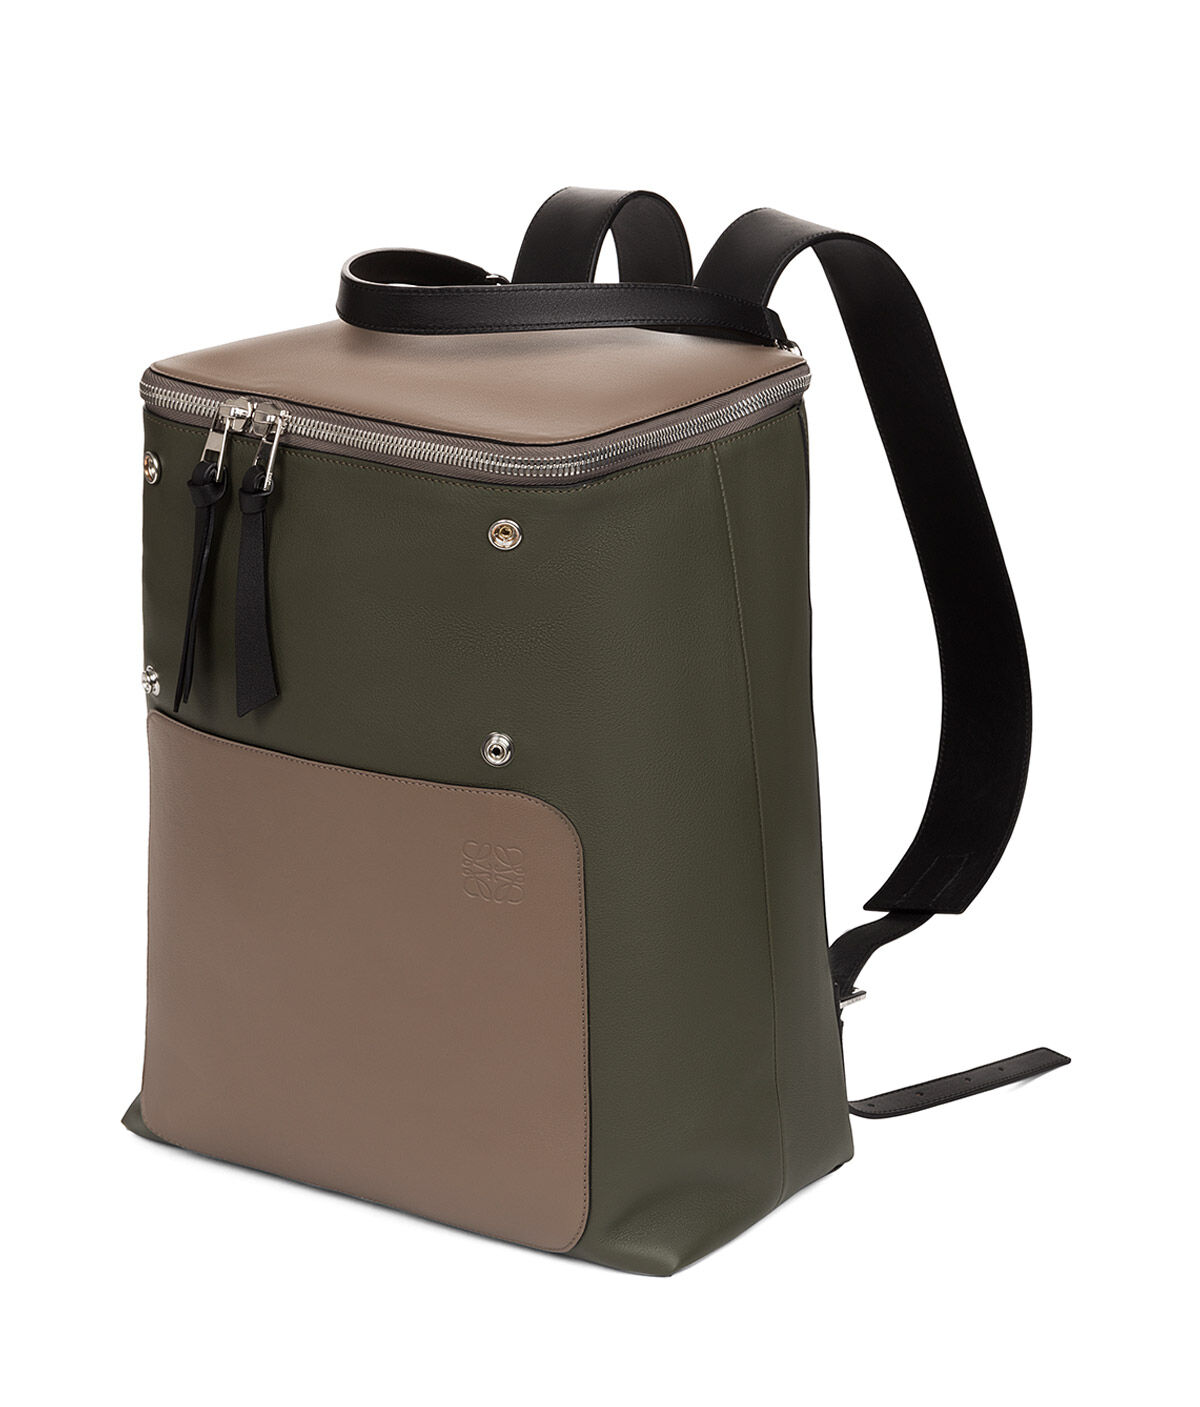 LOEWE ゴヤ バックパック Dark Taupe/Military Green/Bl all